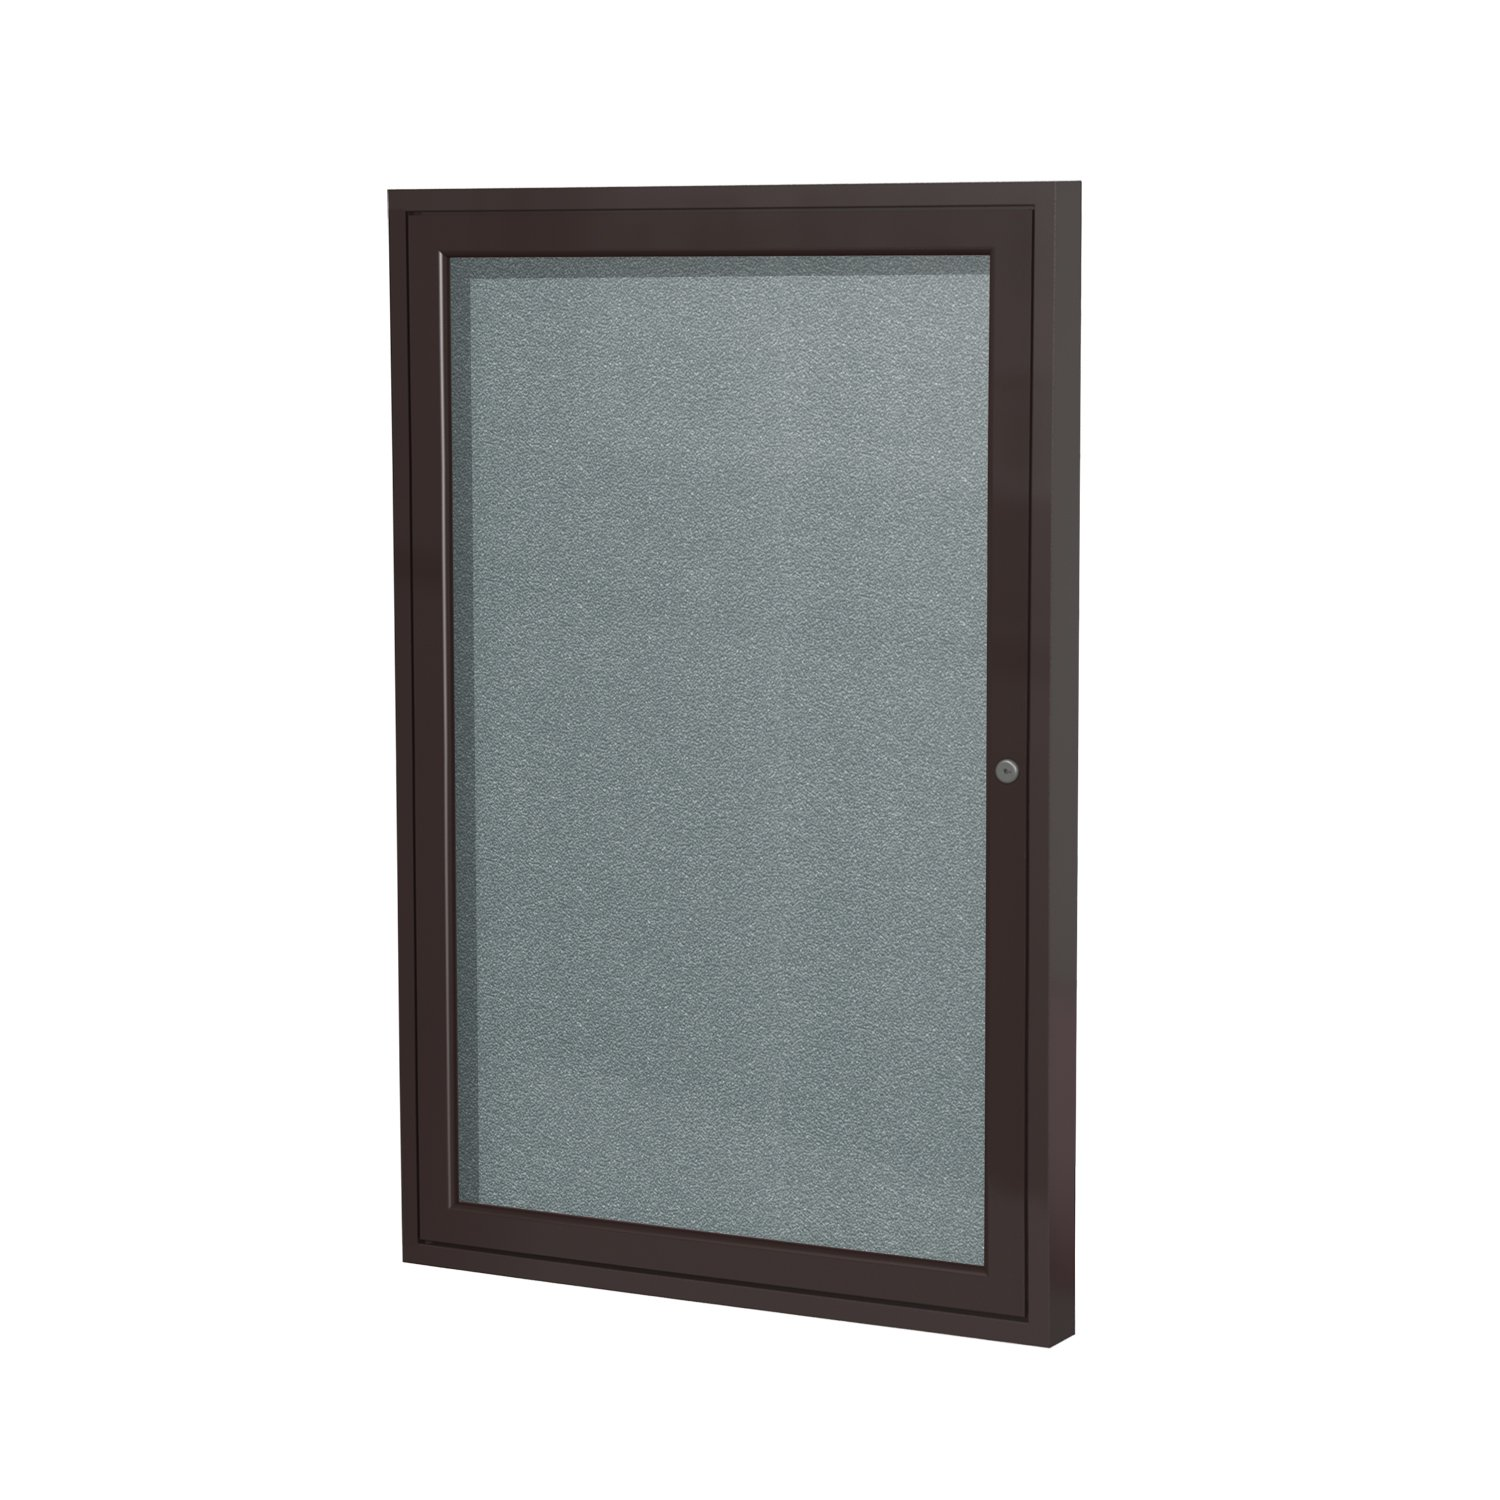 1 Door Outdoor Enclosed Bulletin Board Frame Finish: Bronze, Size: 2' H x 1'6 W, Surface Color: Stone Ghent PB12418VX-199